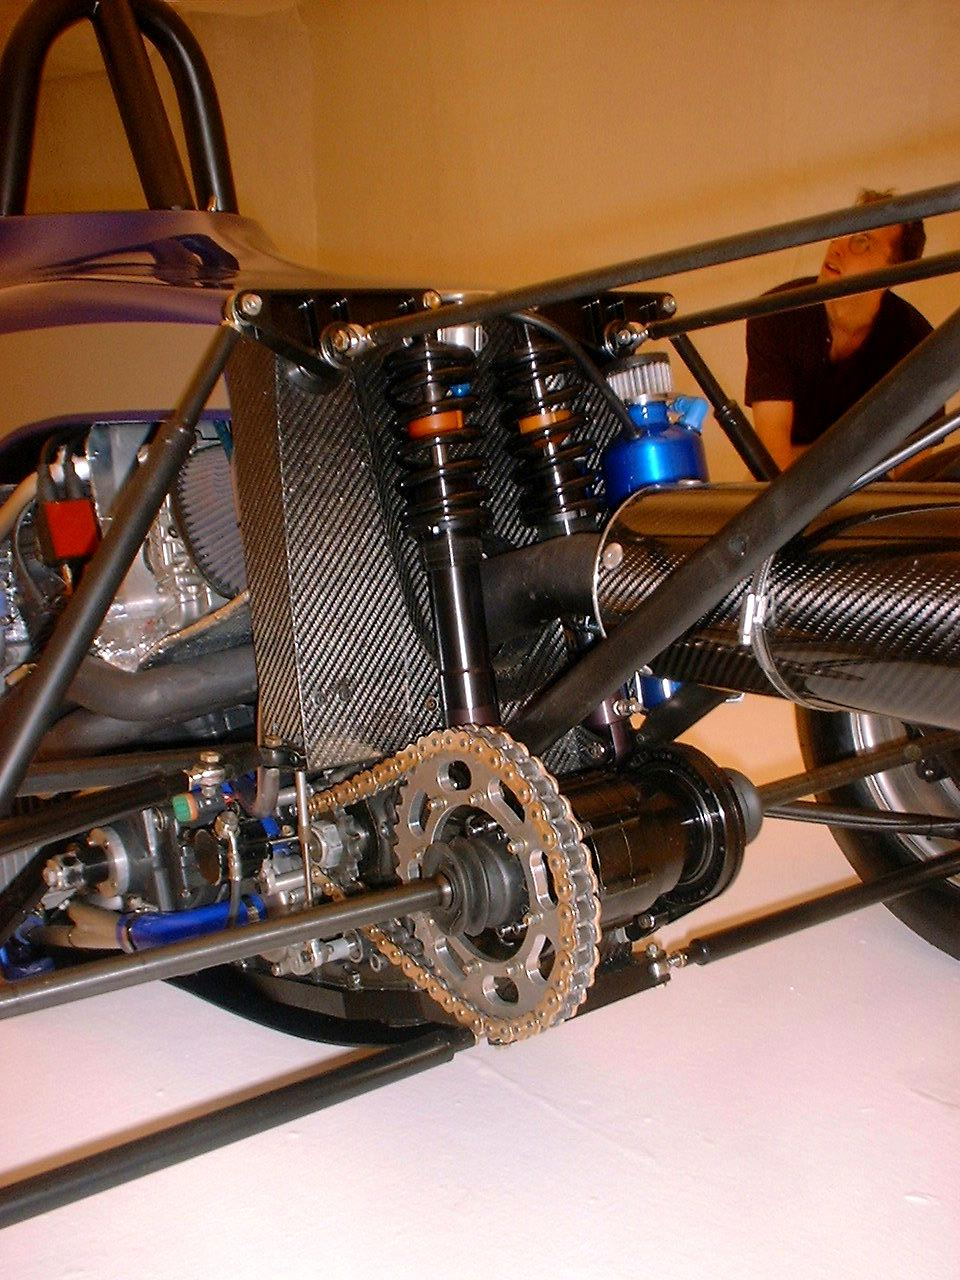 Pcd Saxon S1100 Chassis